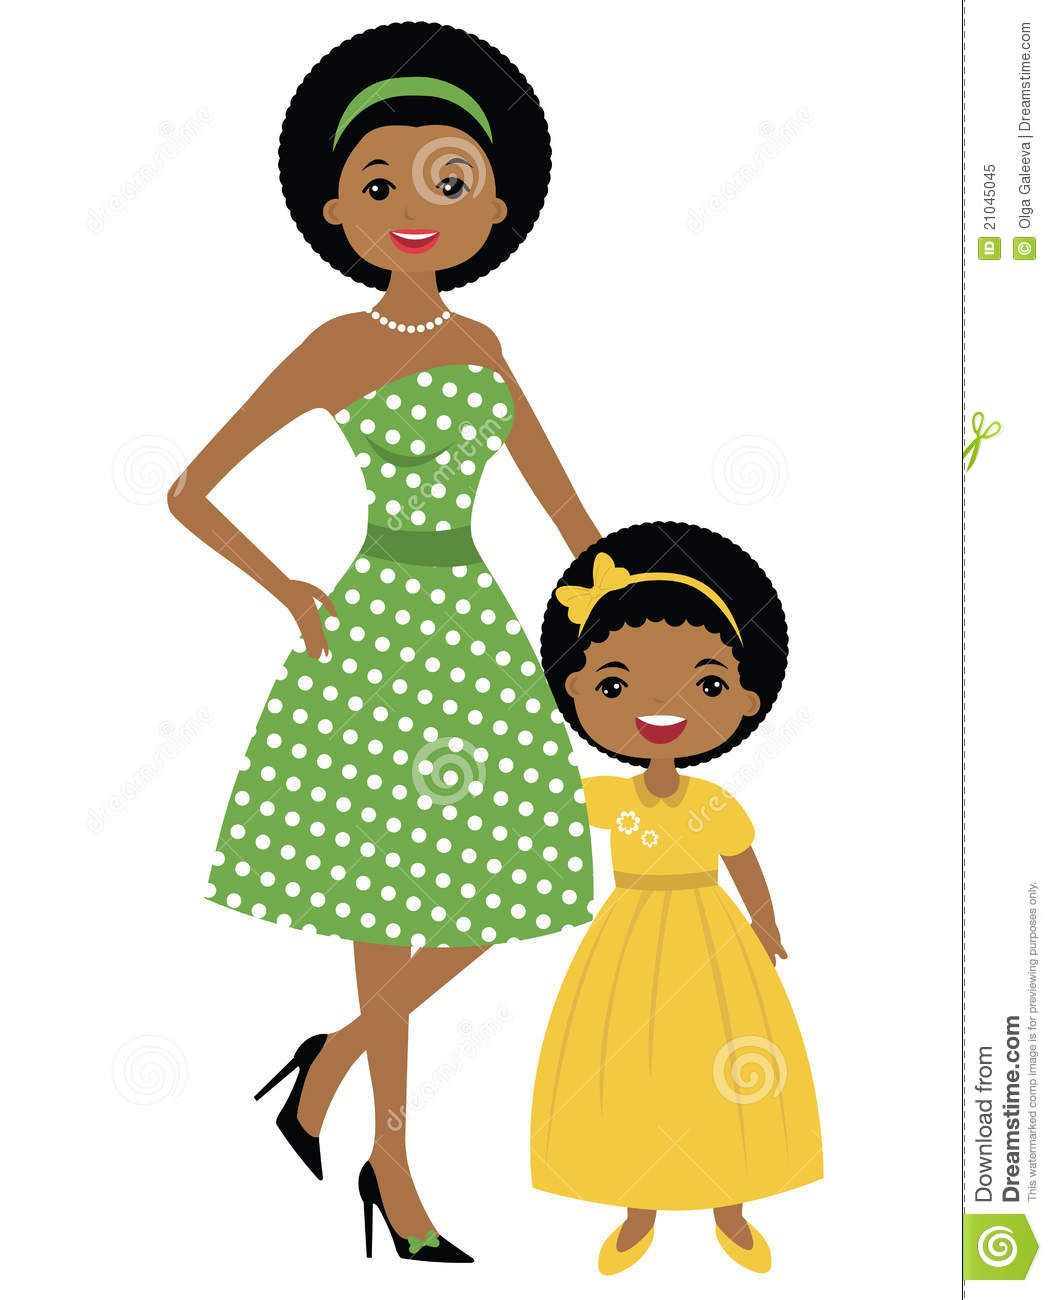 african american business woman clipart free clip art images rh pinterest co uk clipart of women in hats clip art of women golfers